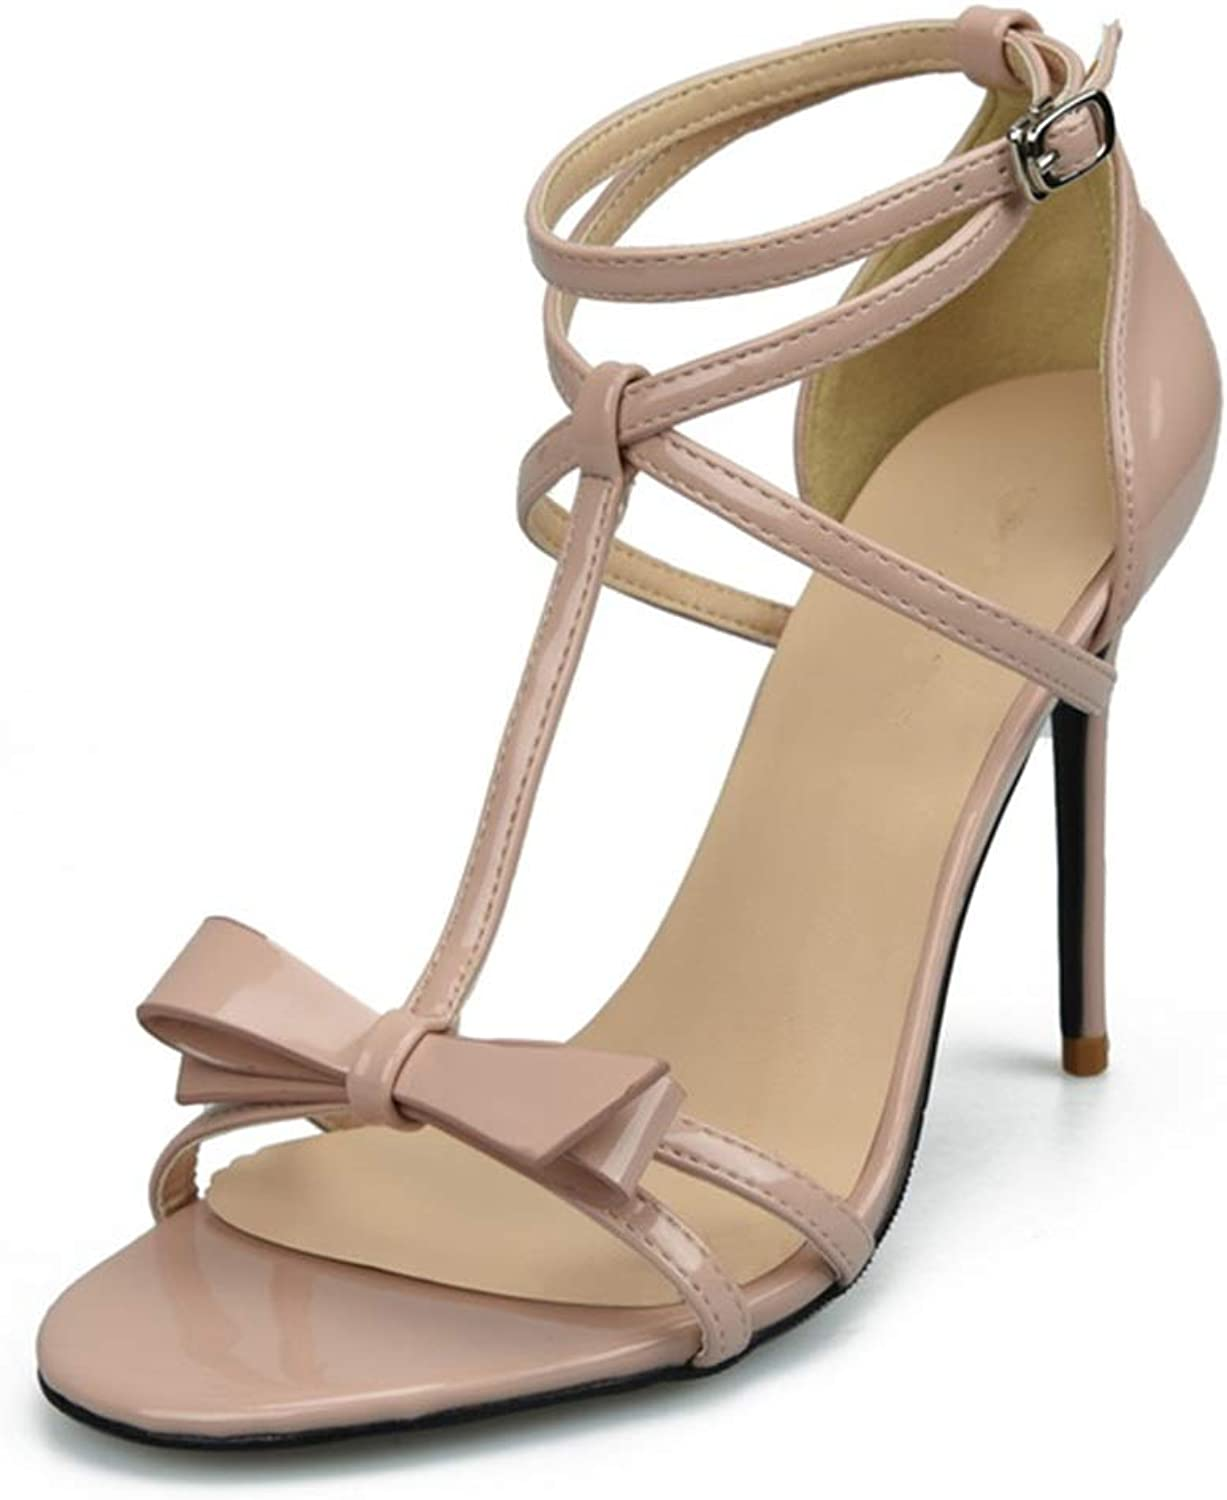 Lindarry Ankle Strap Sandals for Women Stiletto 8cm High Heeled T Strap with Bowtie Open Toe Patent Faux Leather Fashion (color   Nude, Size   33 EU)